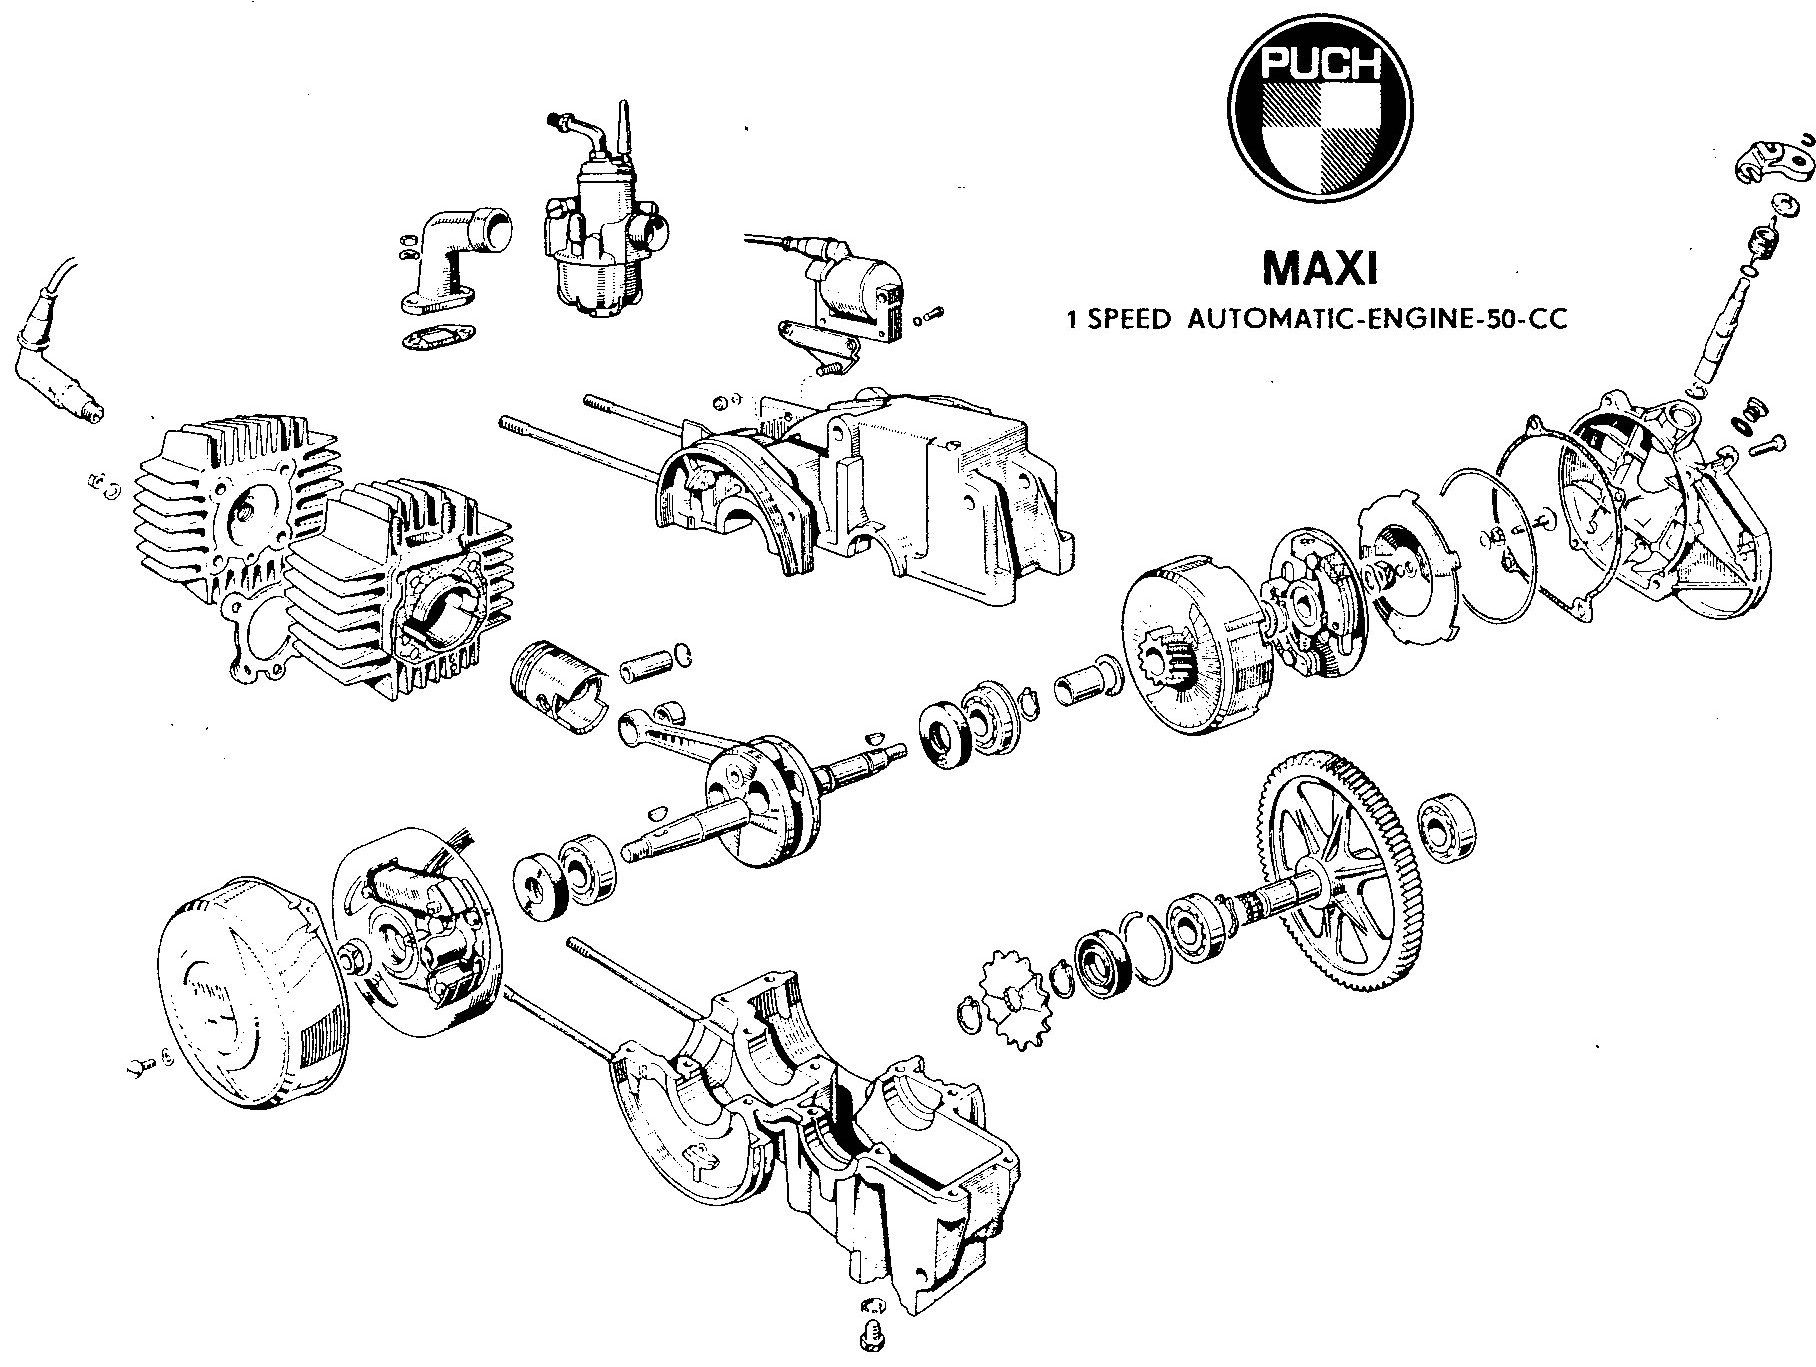 handy diagram of the e50 puch engine mopeds u2022 lil chopz rh pinterest com